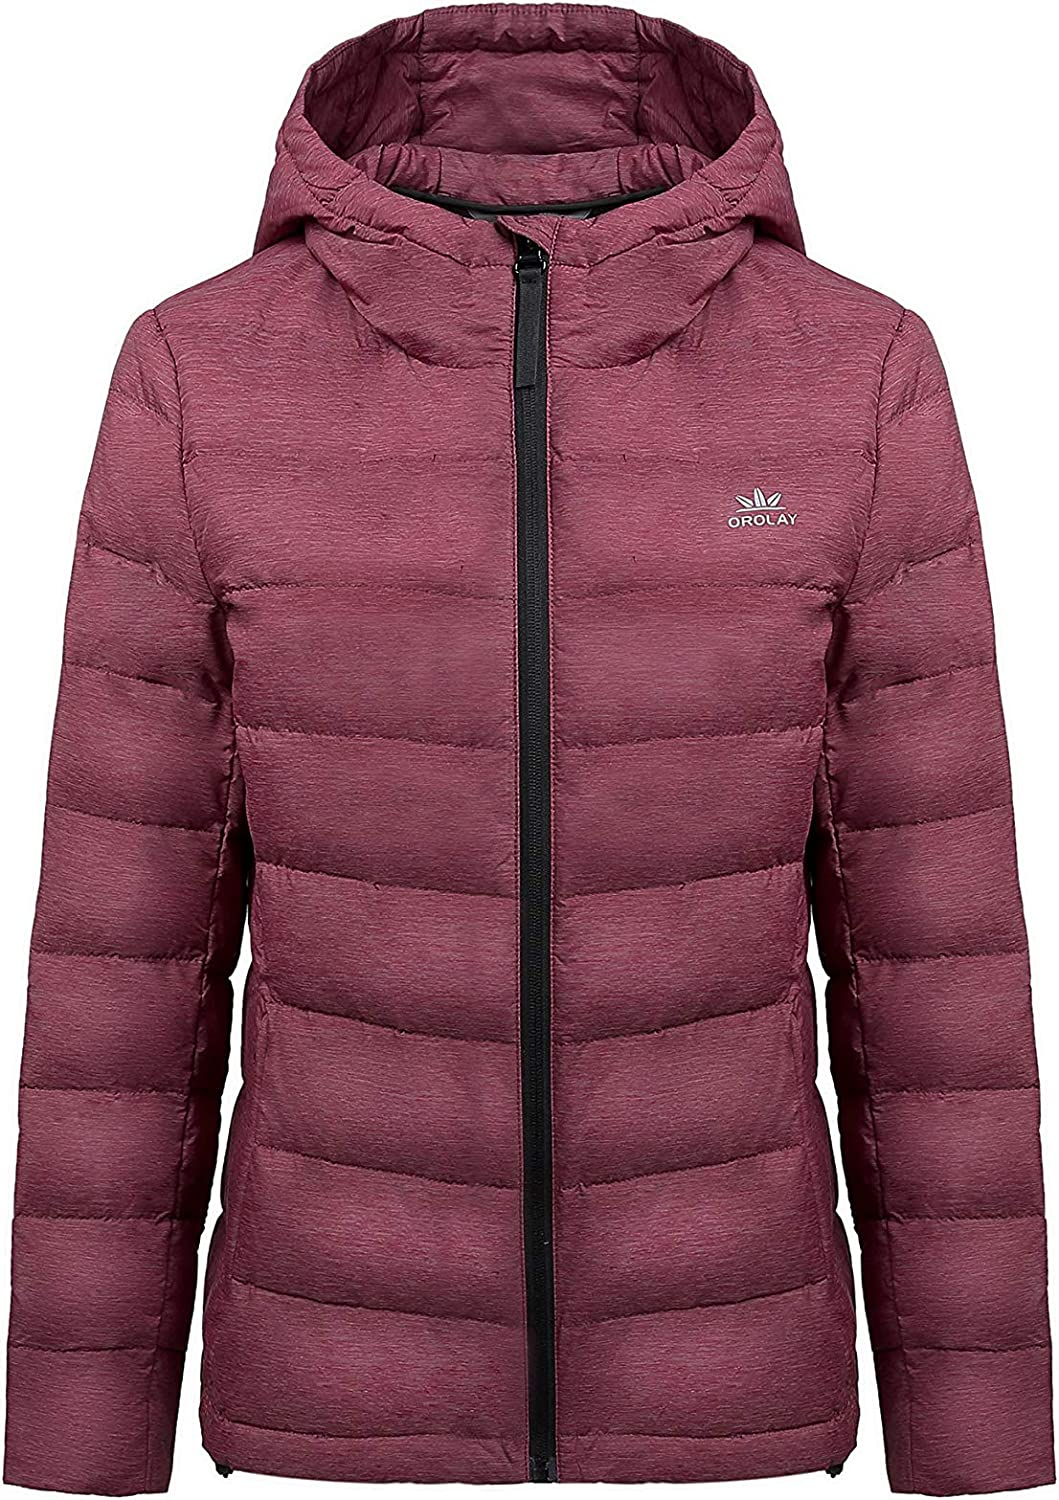 Orolay Women's Light Hooded Down Jacket Bubble Coat Packable Quilted Puffer Jacket